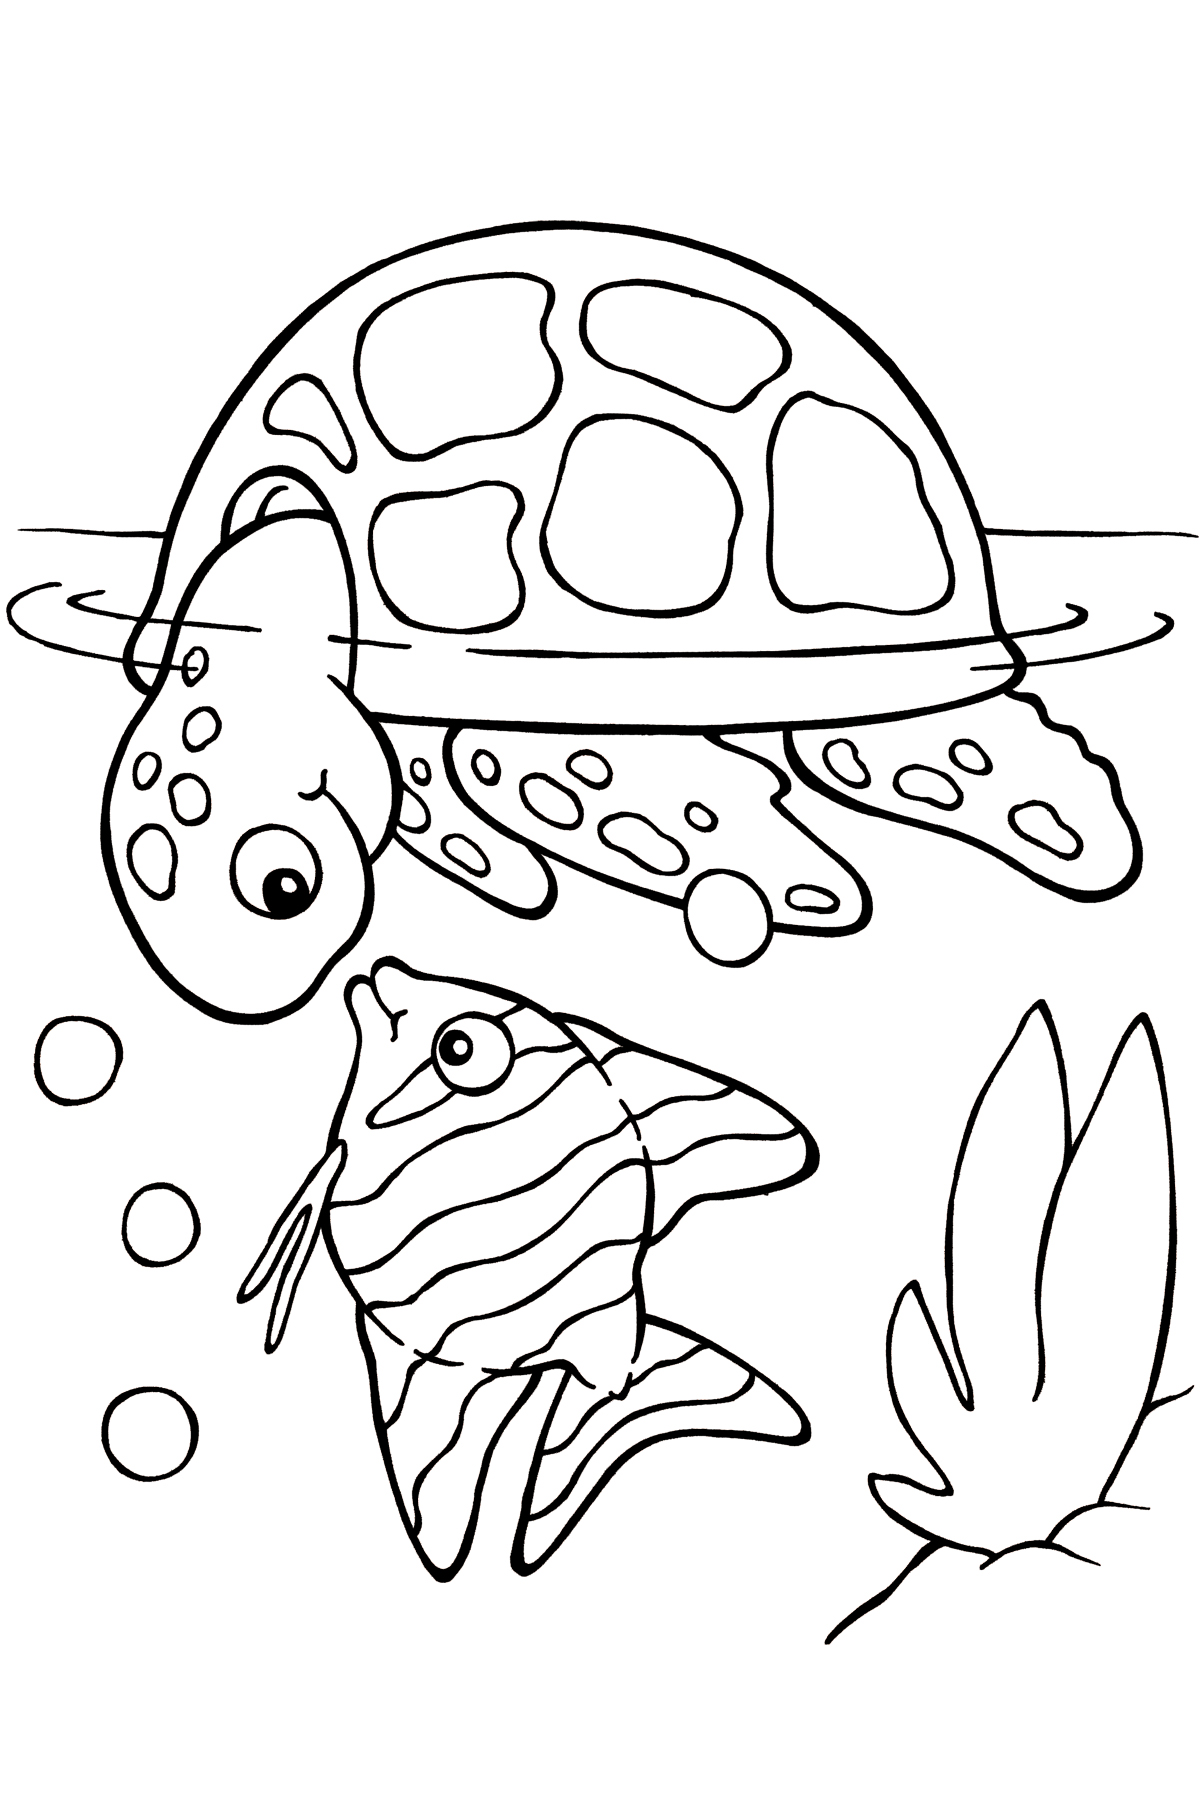 Sea Animal Coloring Pages Printable Free : Sea turtle coloring pages to download and print for free